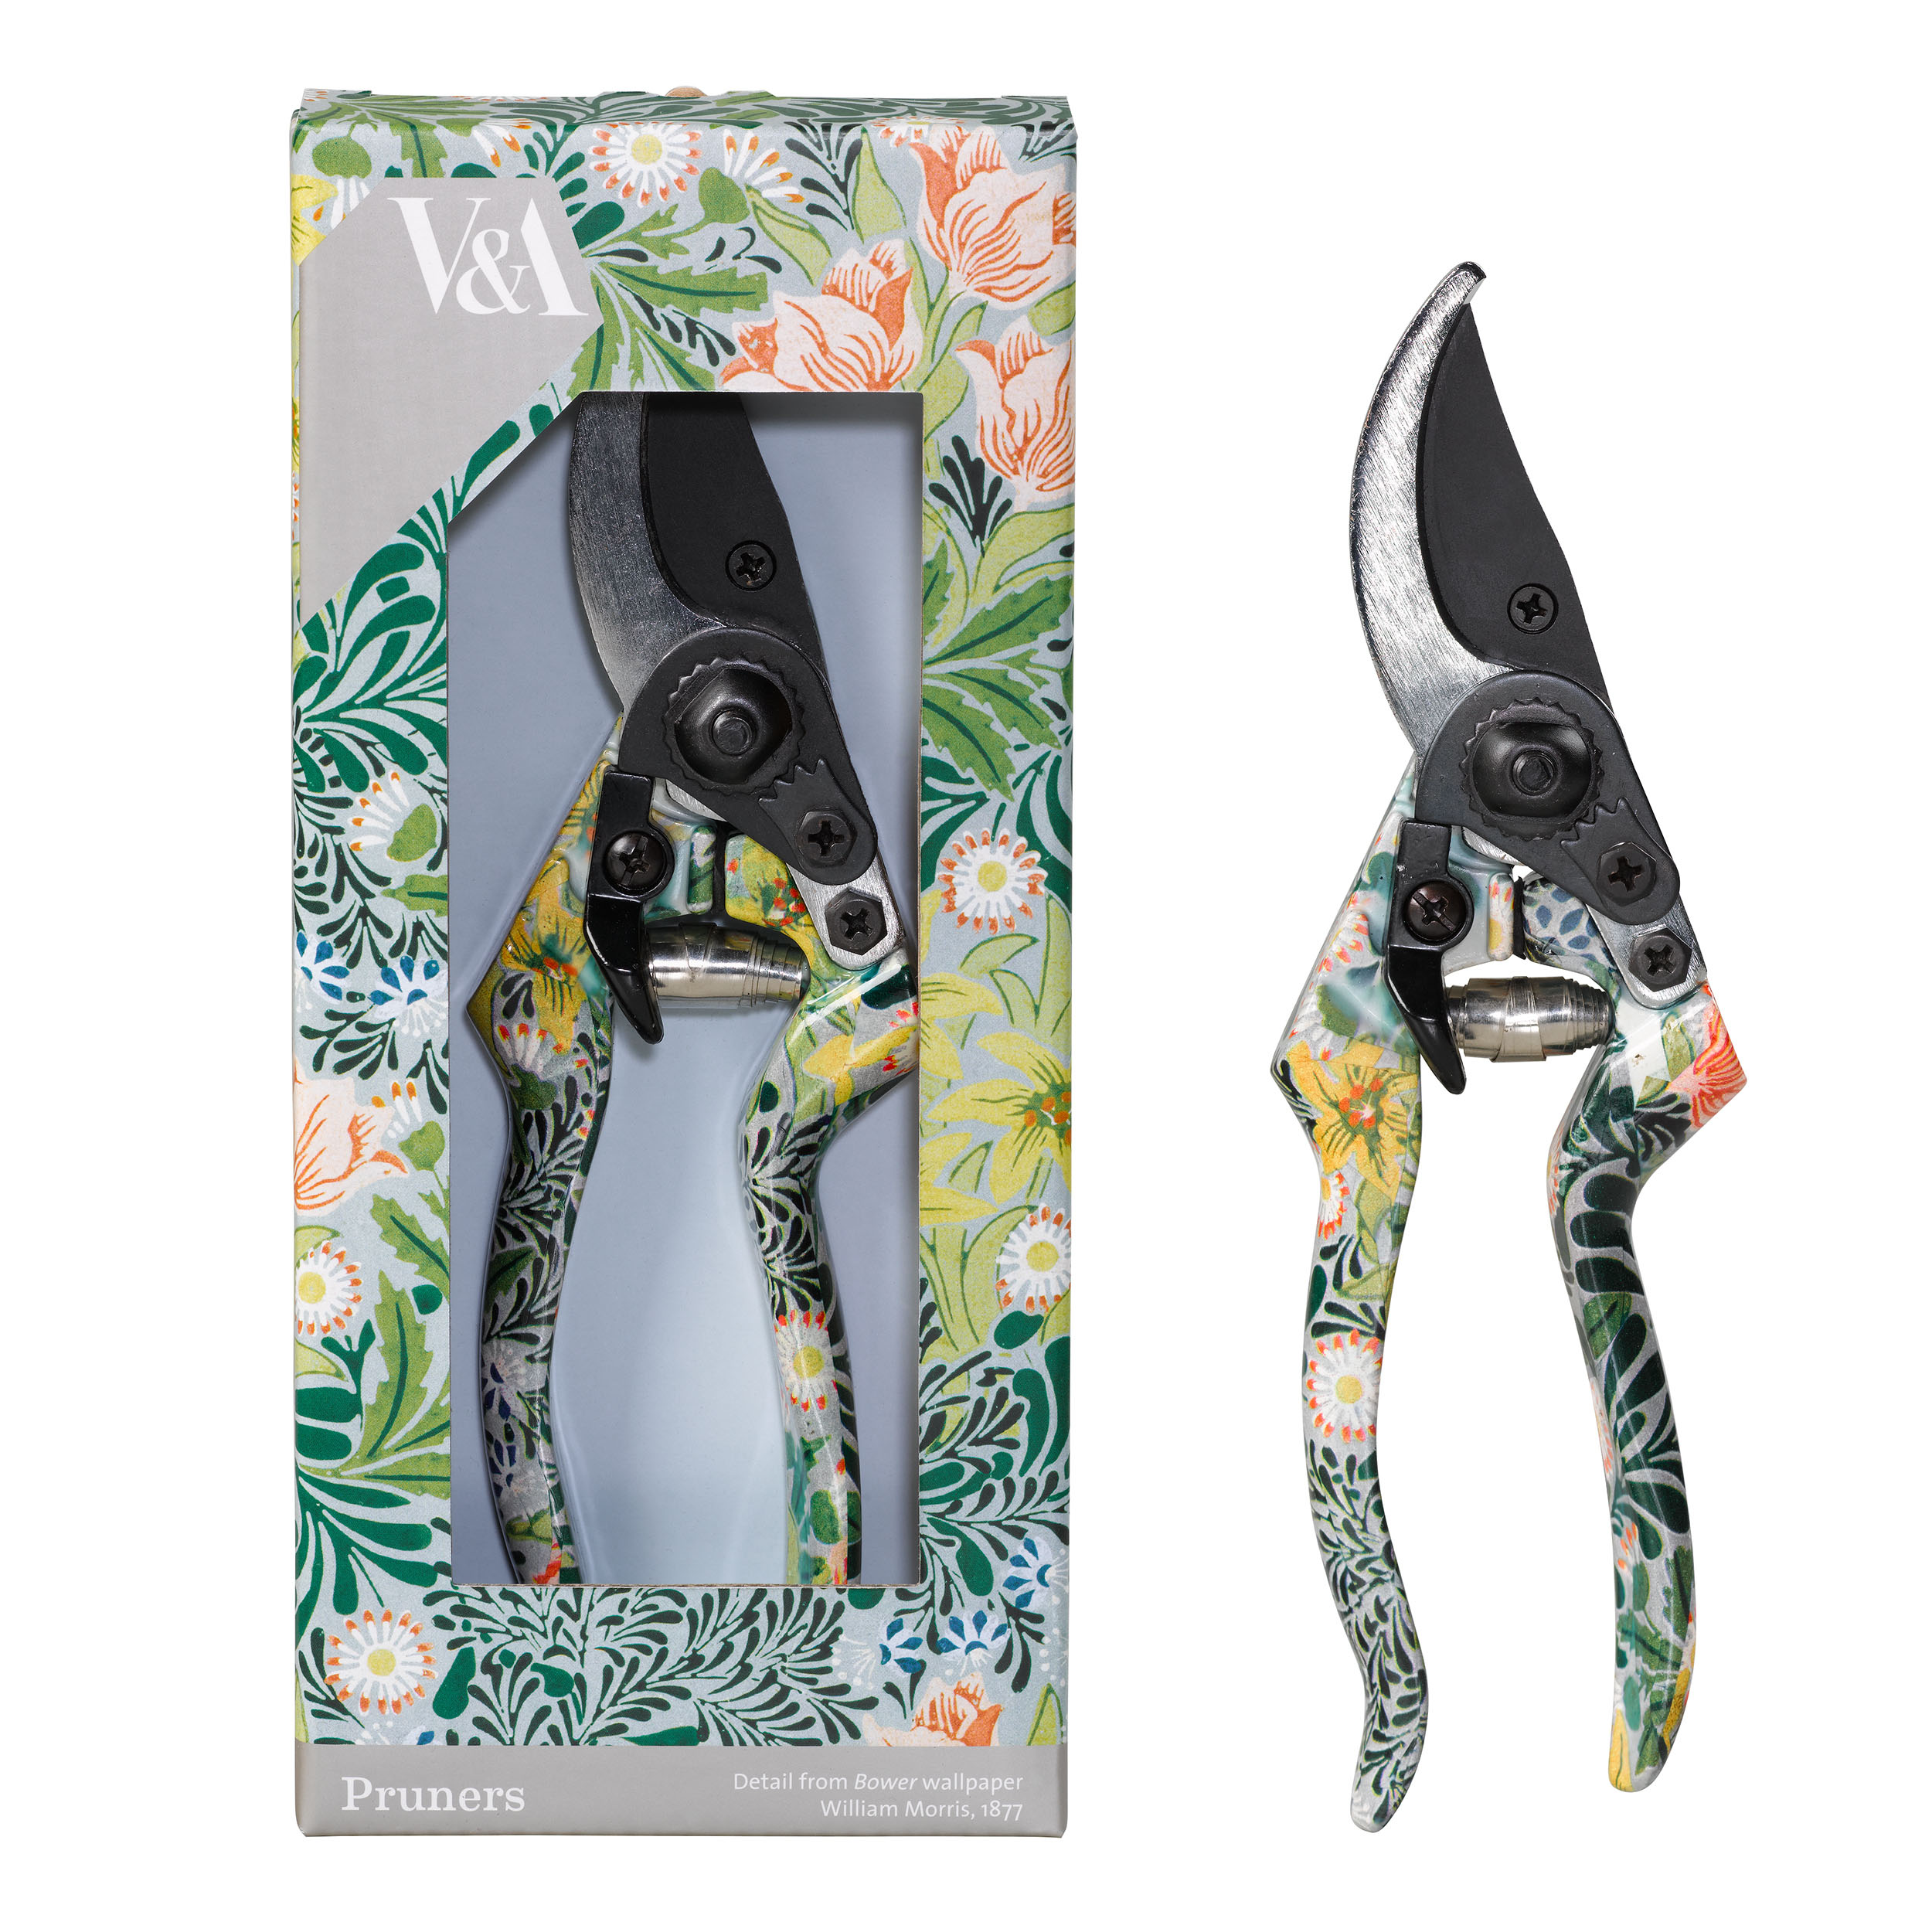 William Morris Pruners